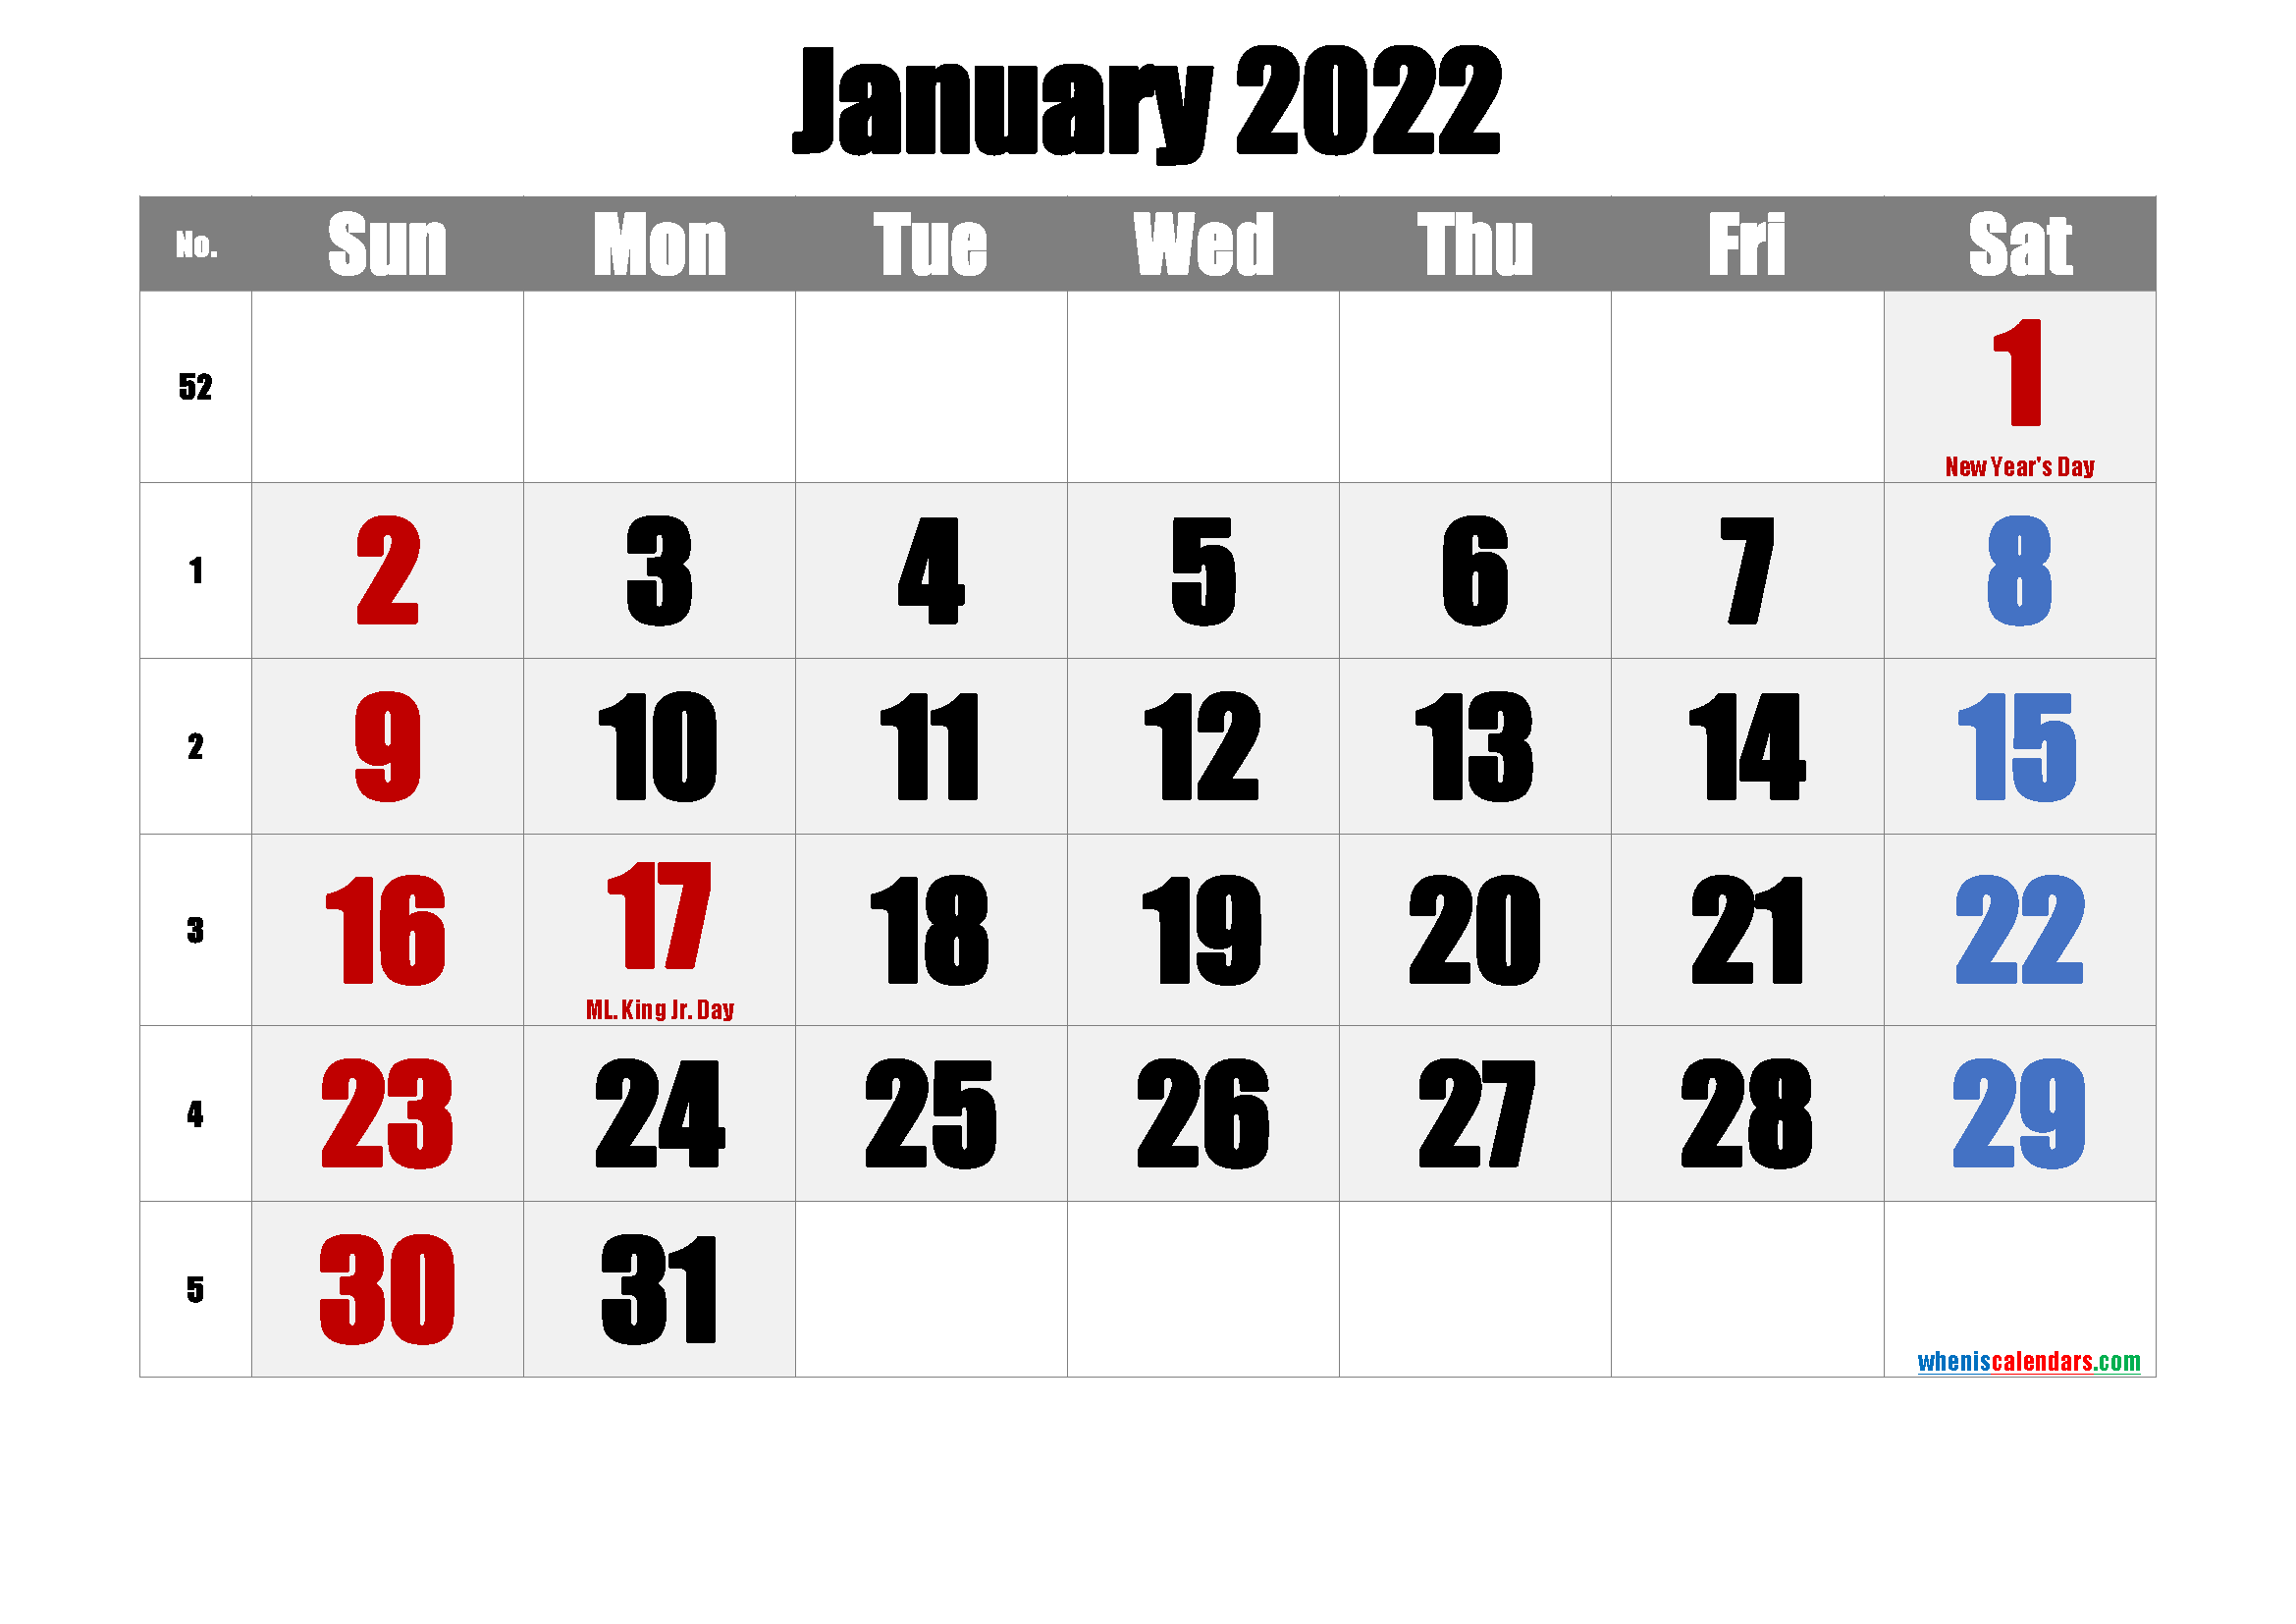 JANUARY 2022 Printable Calendar with Holidays